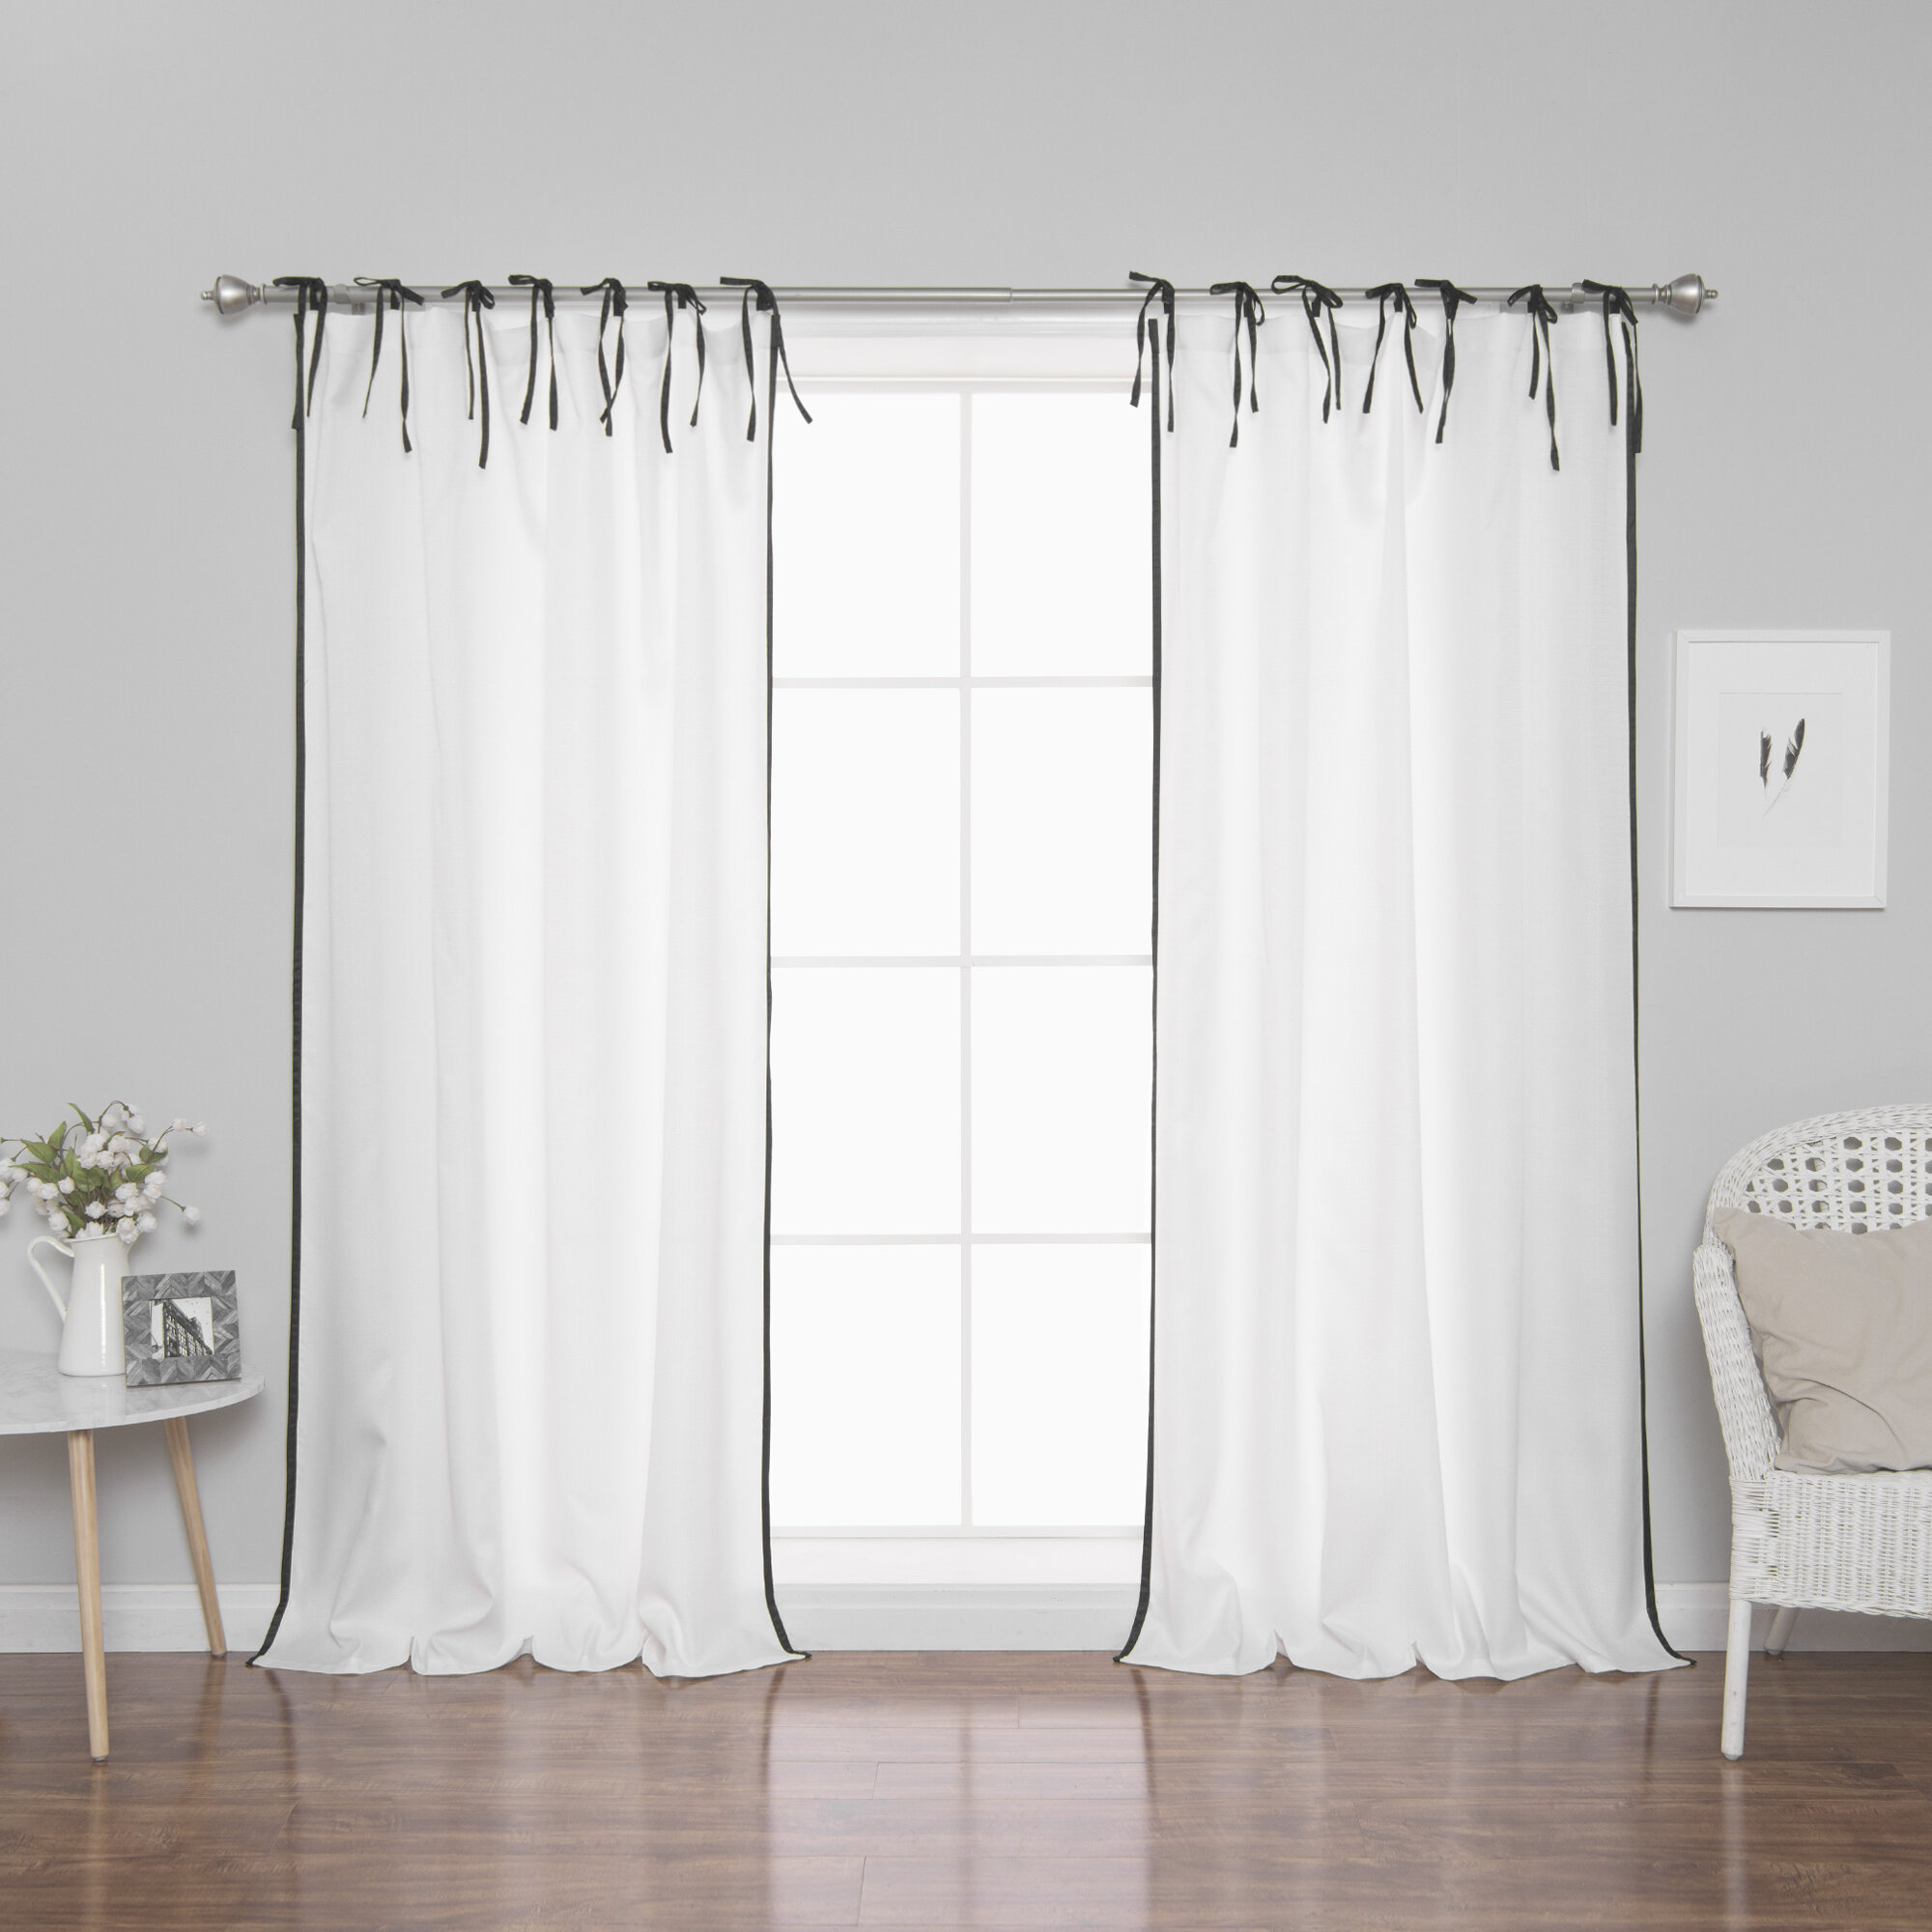 Quinnes Border Tie Top Curtain Panels With Tulle Sheer With Attached Valance And Blackout 4 Piece Curtain Panel Pairs (View 19 of 30)